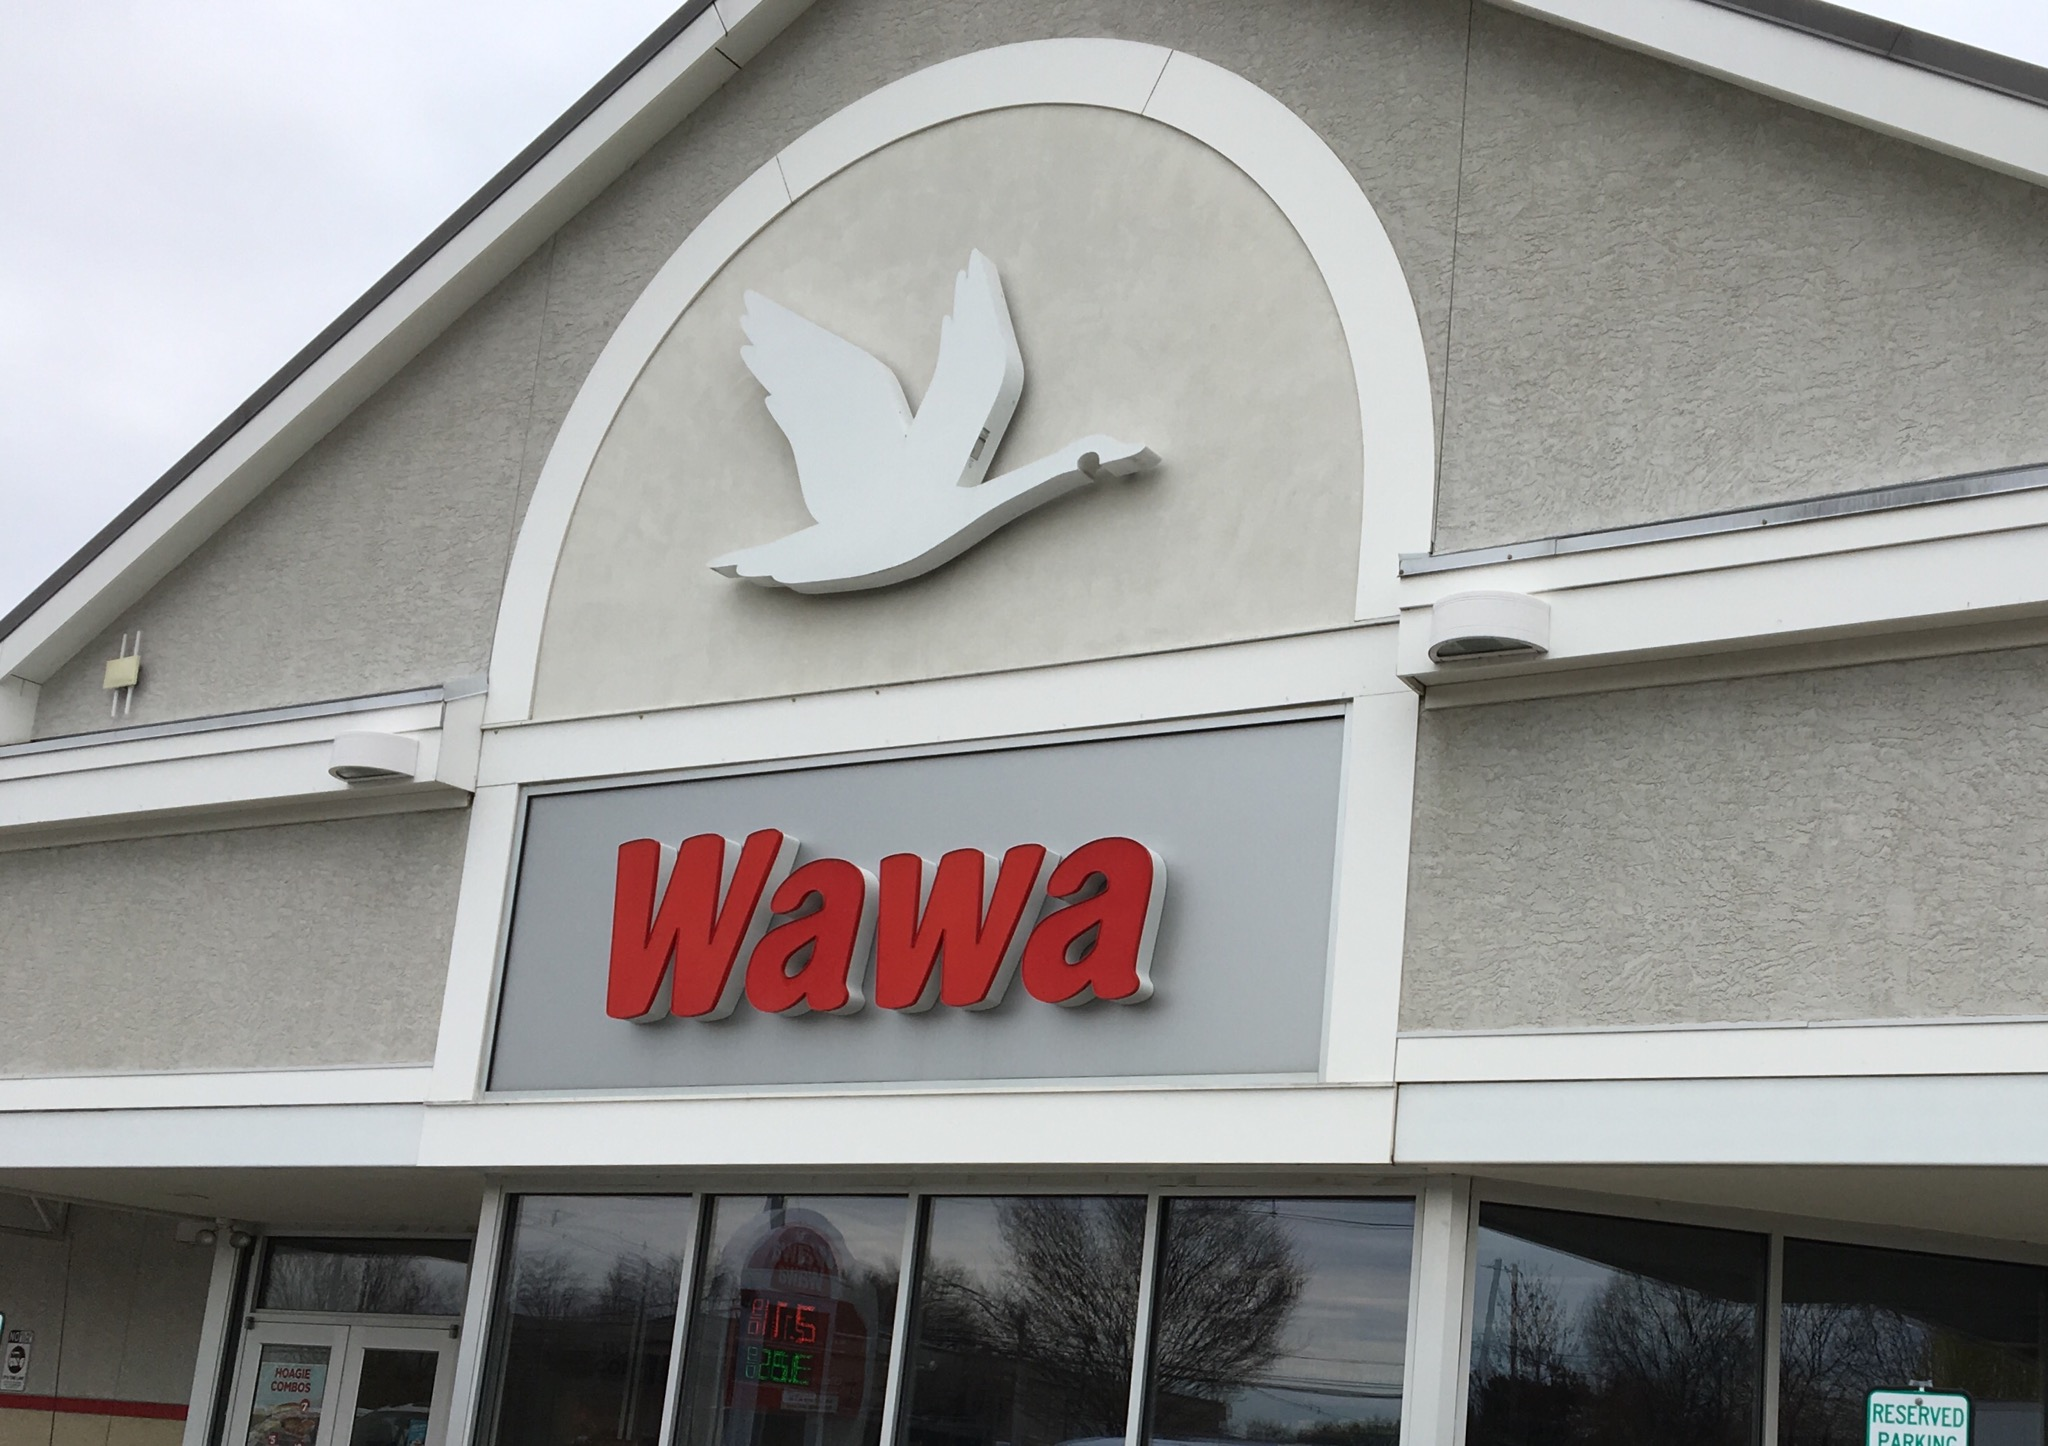 Before Wawa found data breach exposing customers' information, credit card company warned it could happen